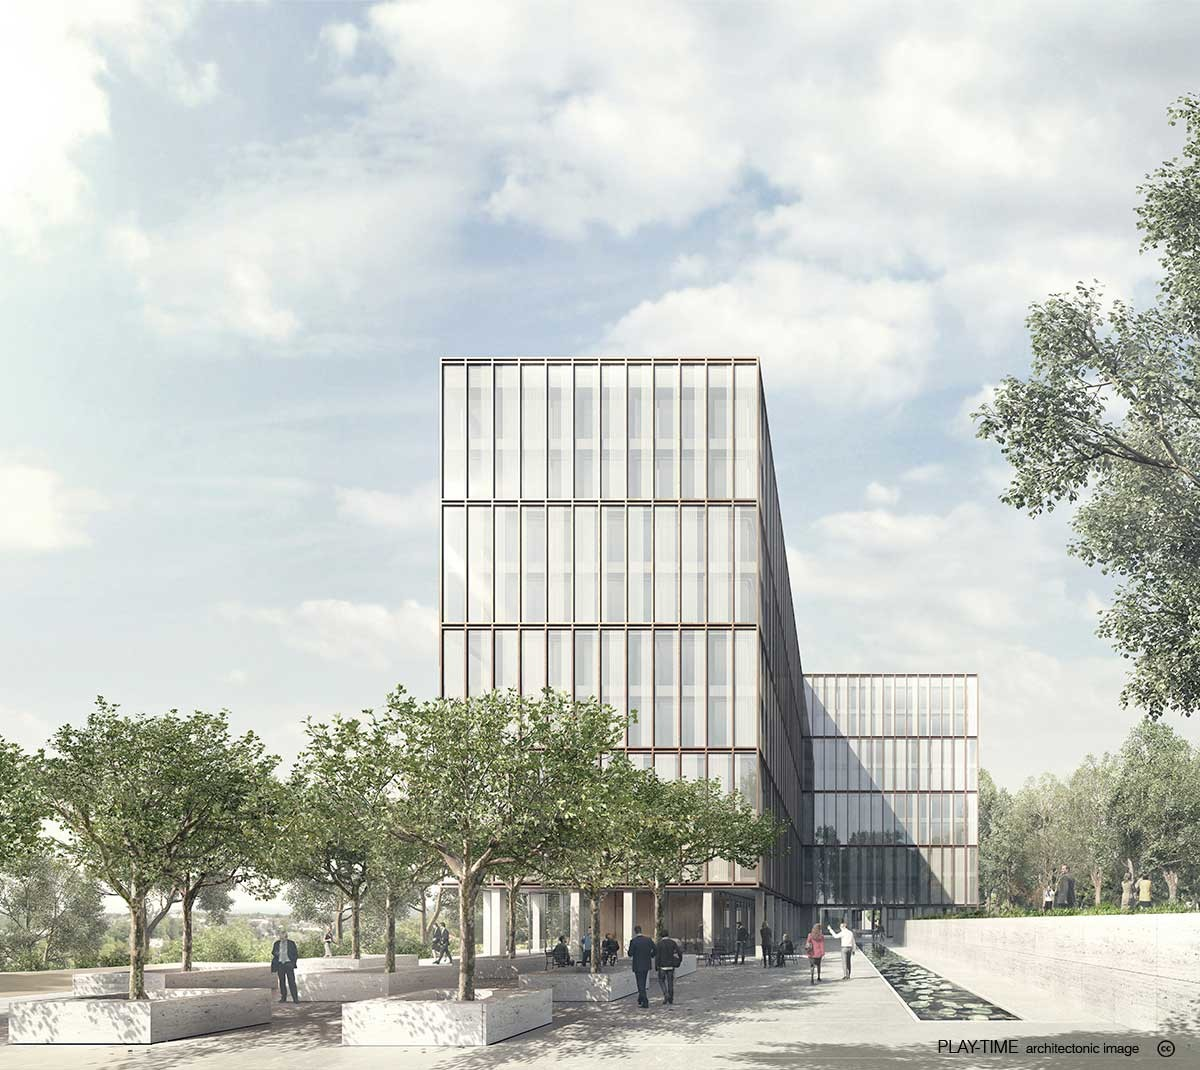 Play time architectonic image gwj architektur office building in bern 1st prize 01